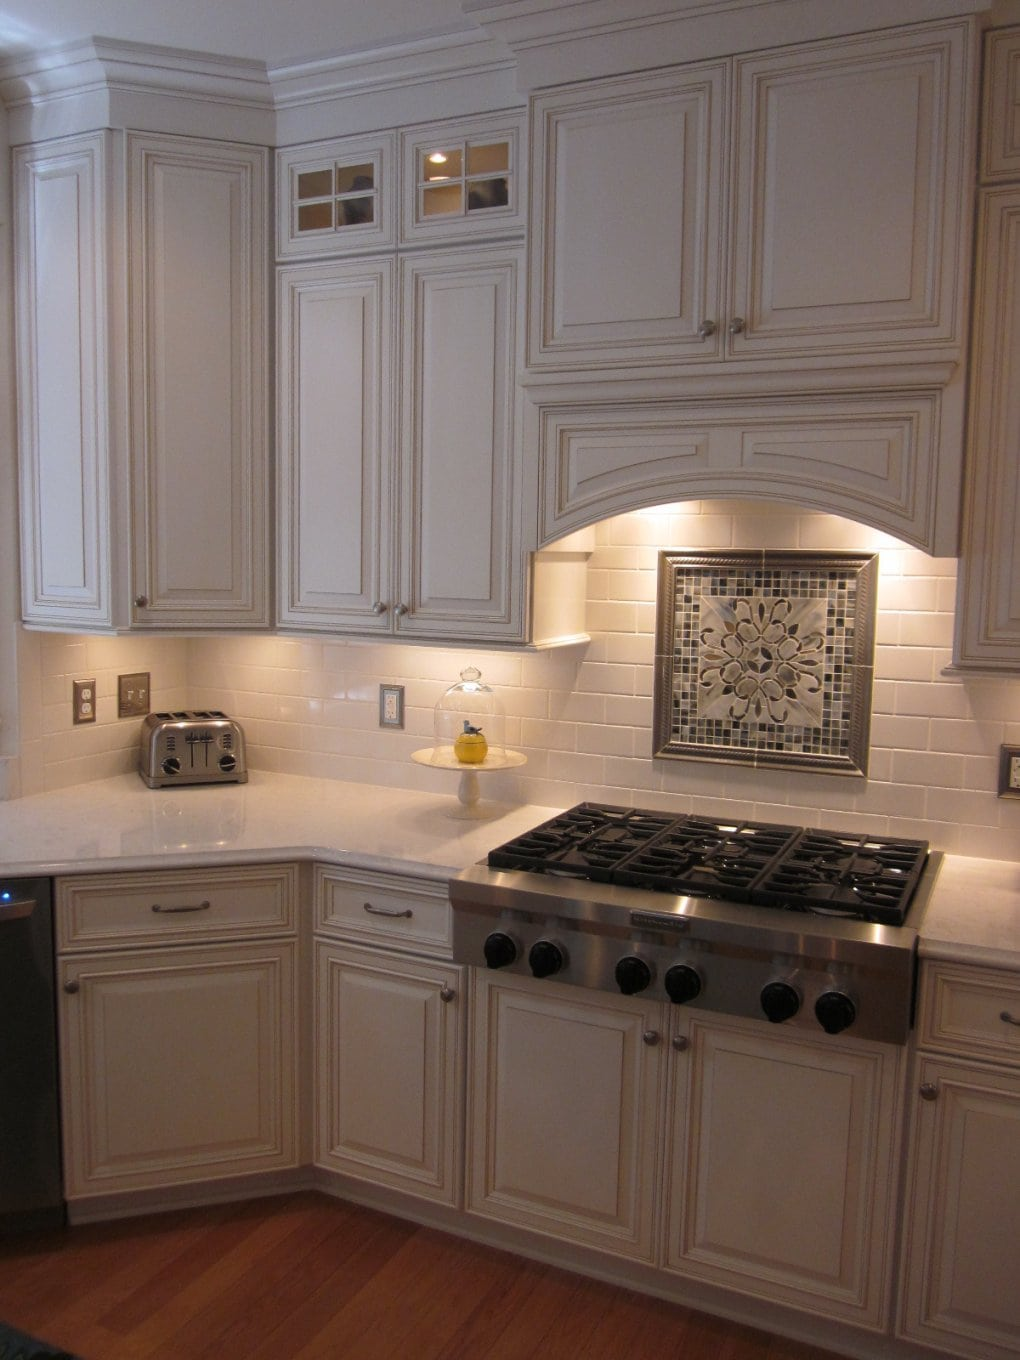 - Create A Focal Point In Your Kitchen - Conestoga Tile